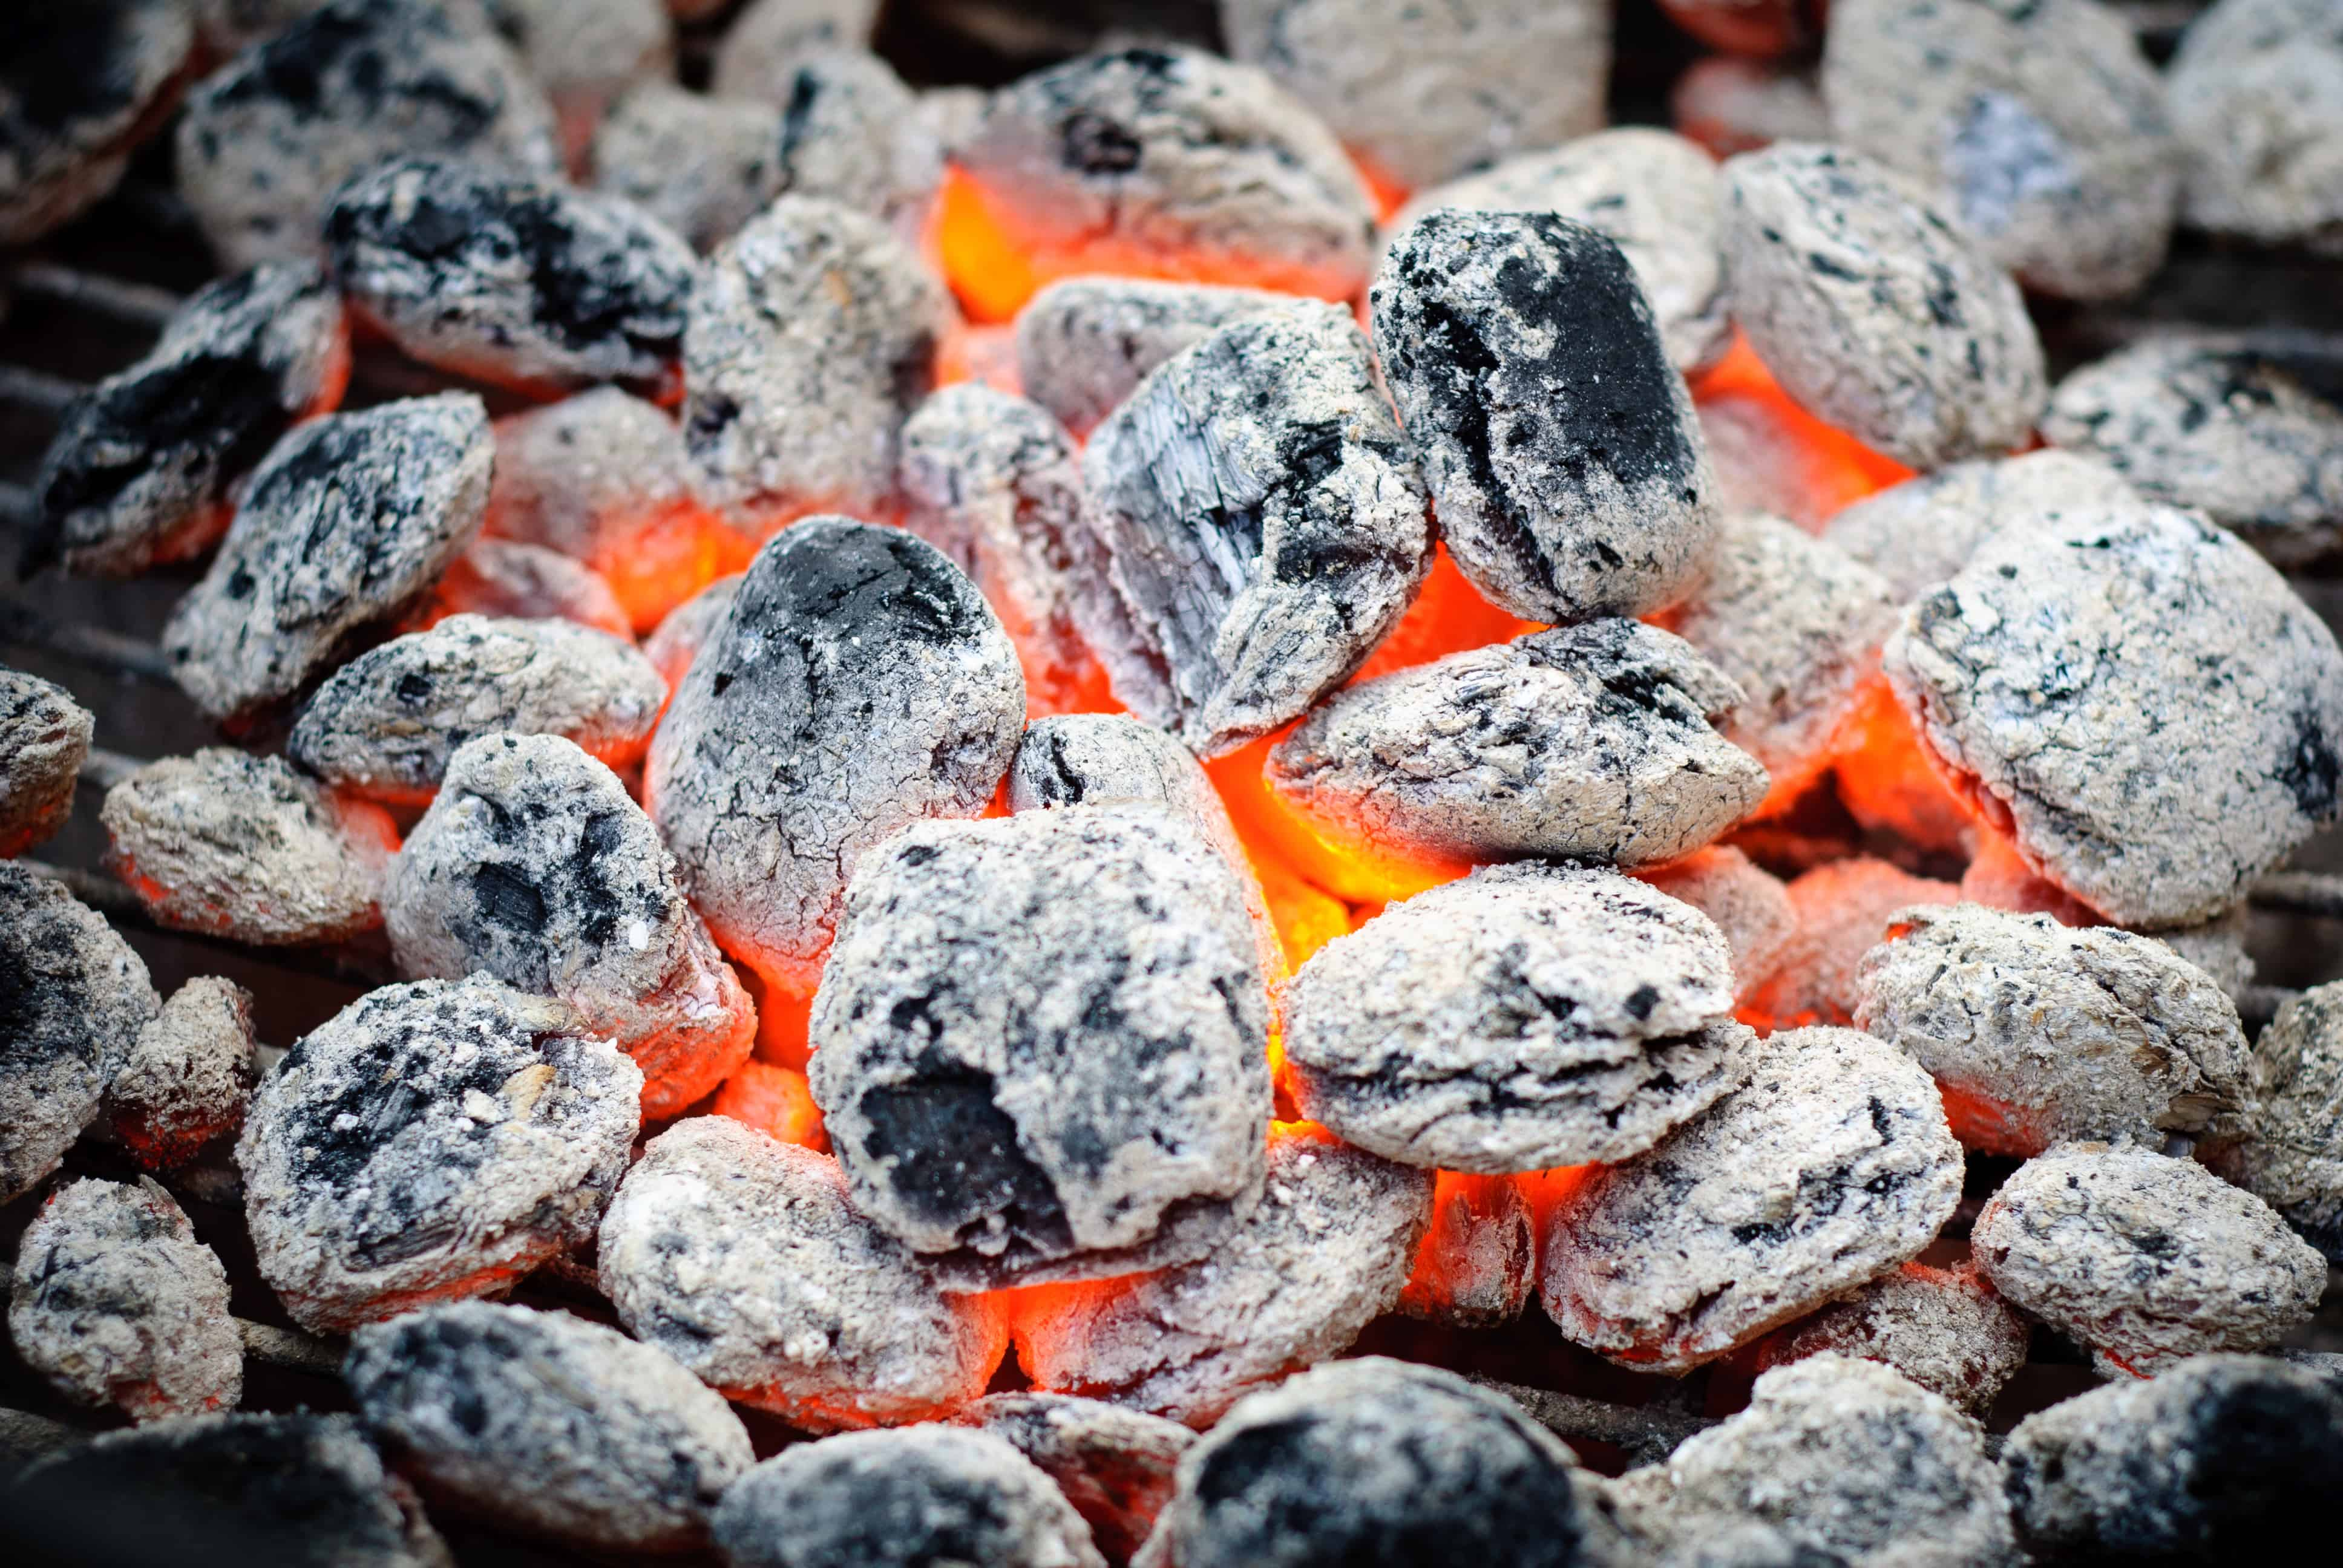 Close up of some red hot, ashed over burning briquettes